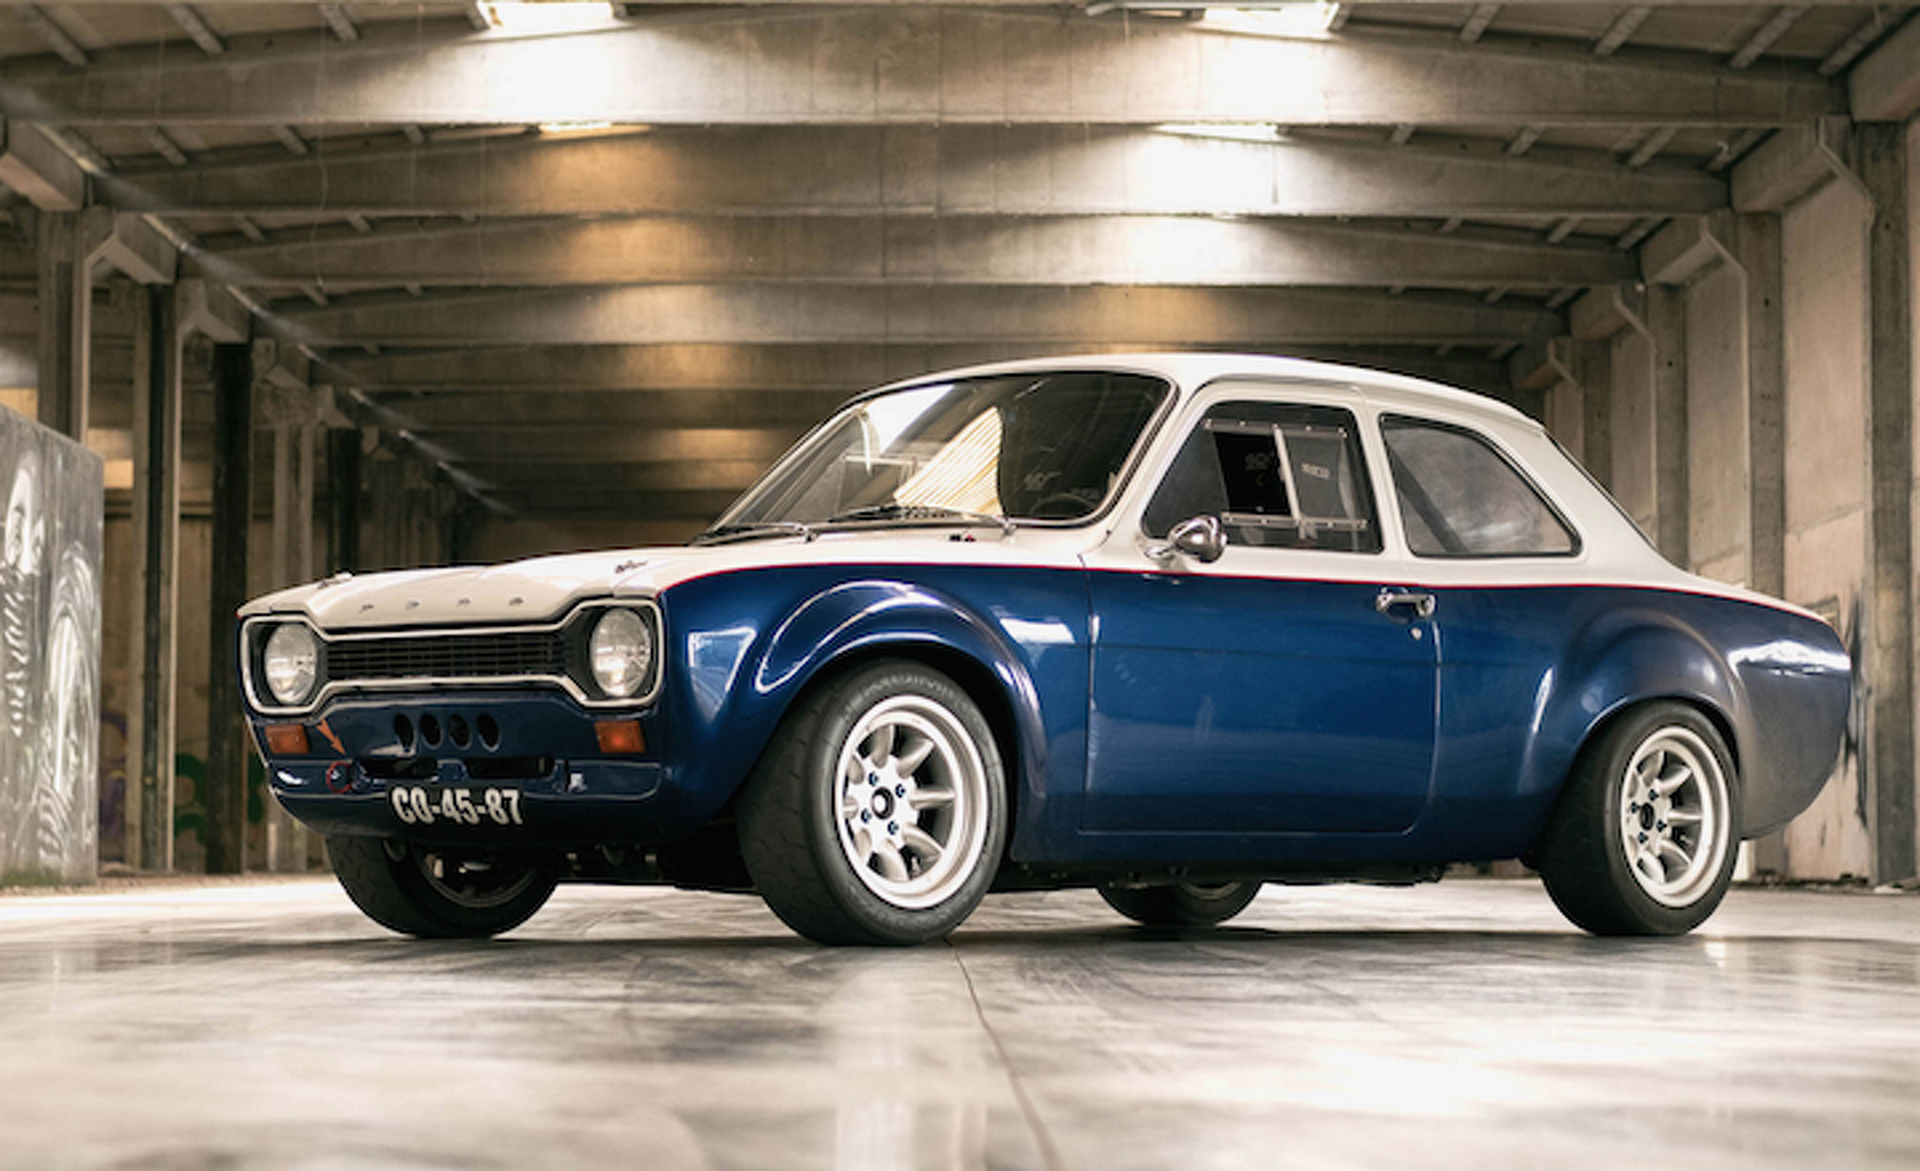 1974 Ford Escort MK1 Restored To Its Former Glory; Promptly Does ...